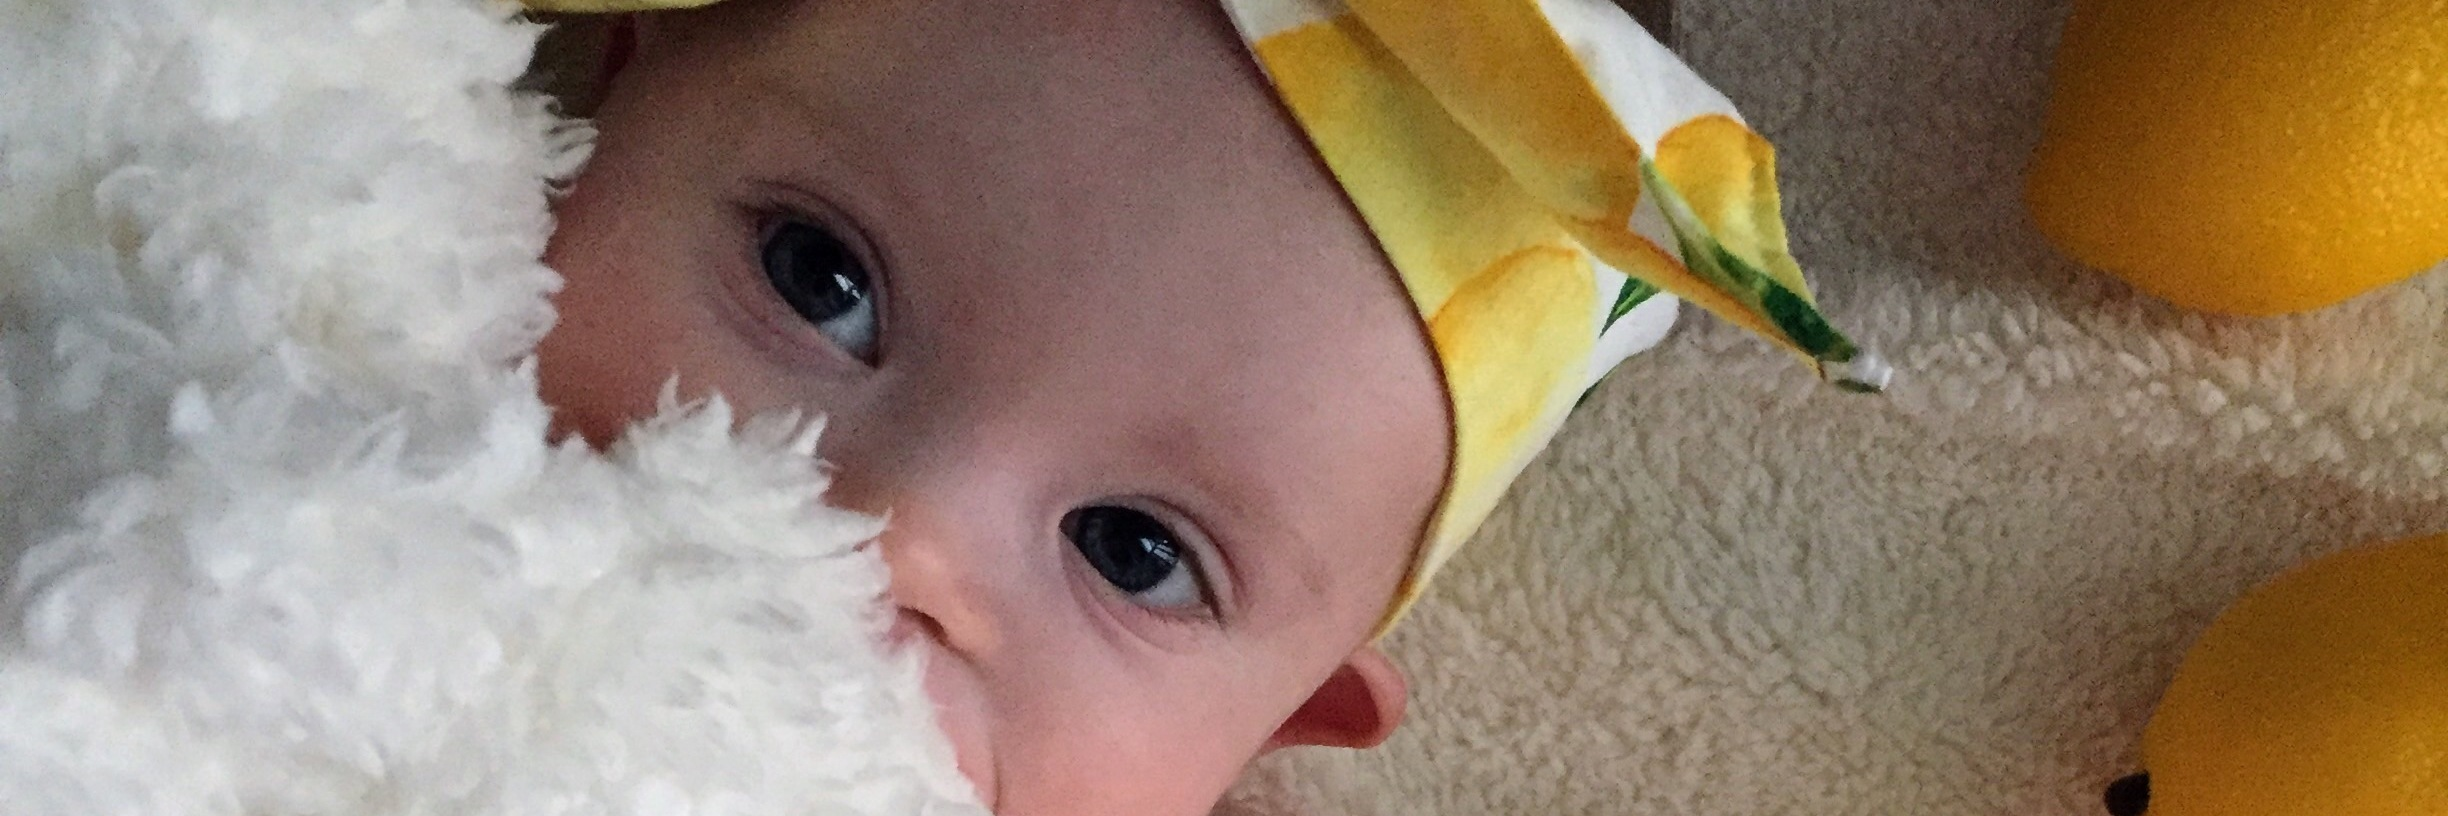 "Little girl with Down syndrome wearing a yellow bow on her head and a white blanket covering her mouth, as if she was playing ""pick-a-boo"""